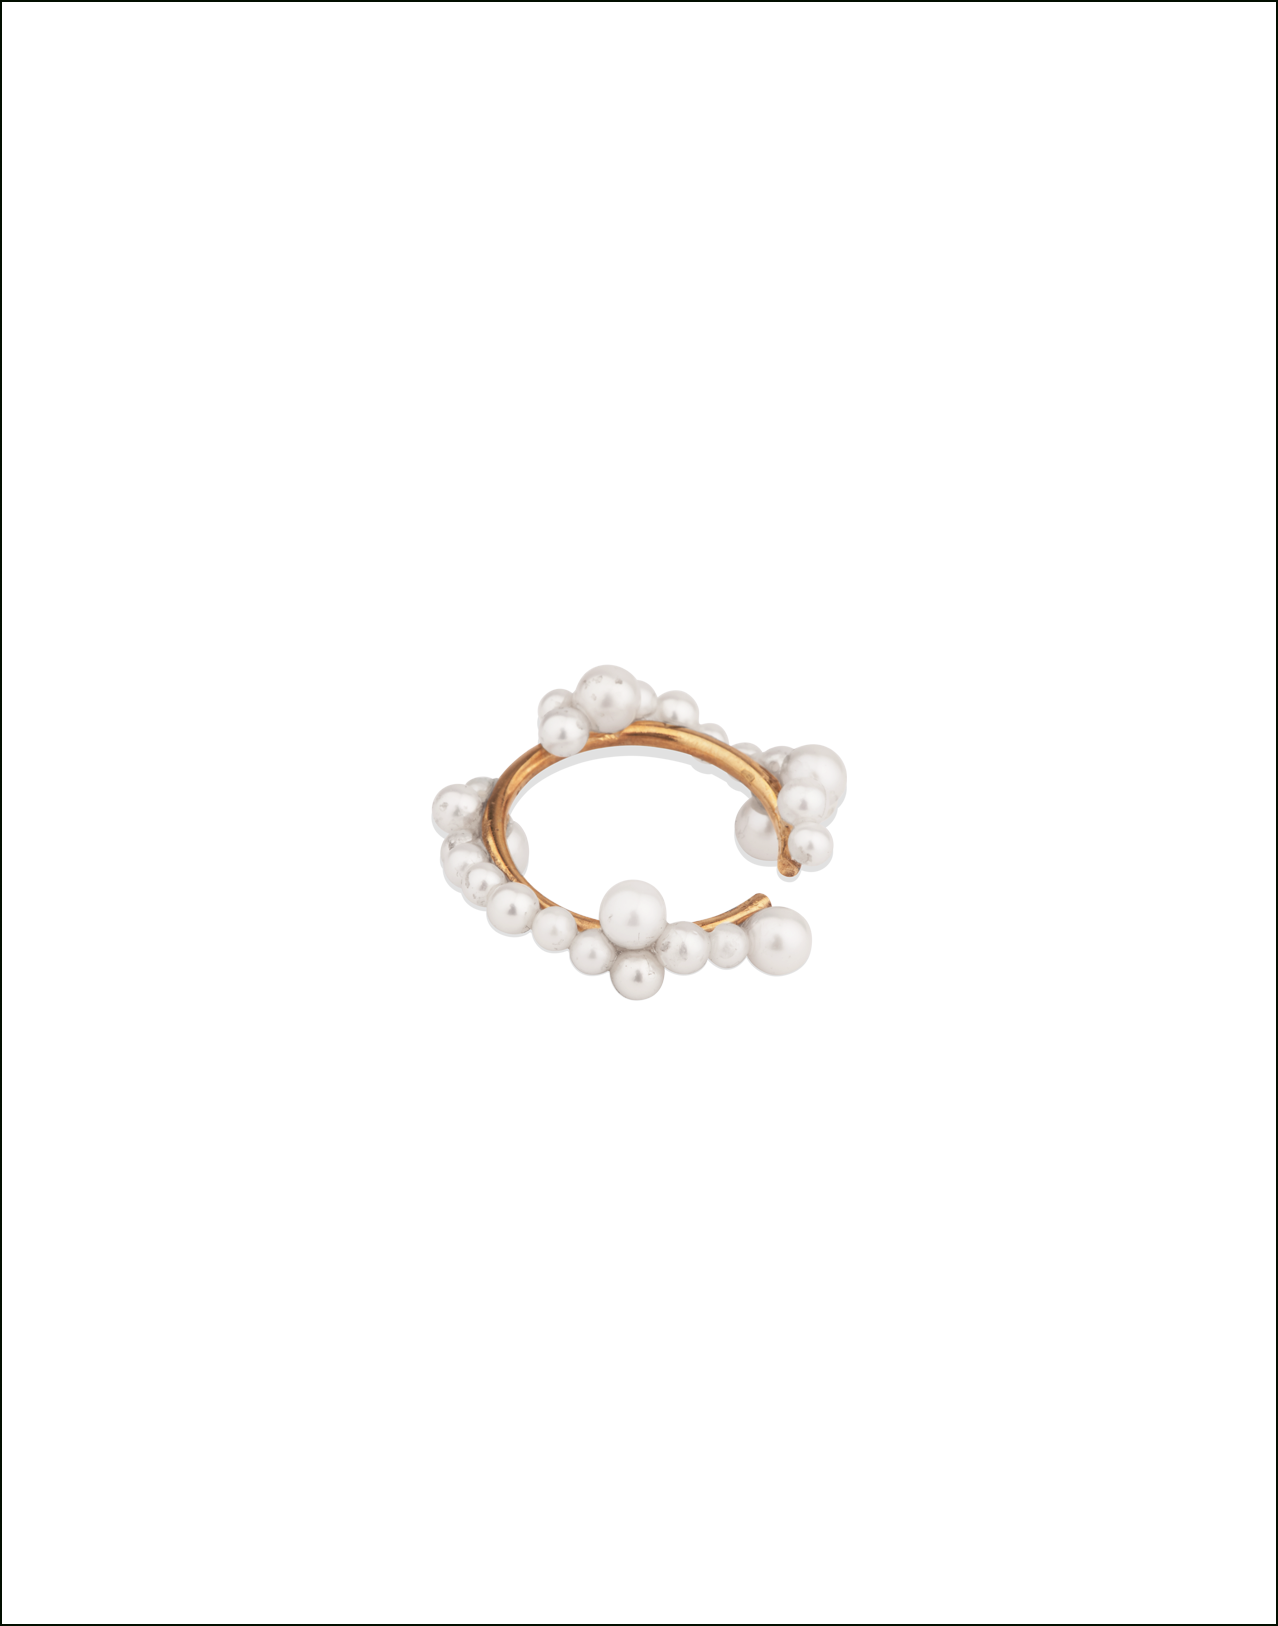 Completedworks-Ear-Cuff-Gold-Vermeil-Snow-3-1.png